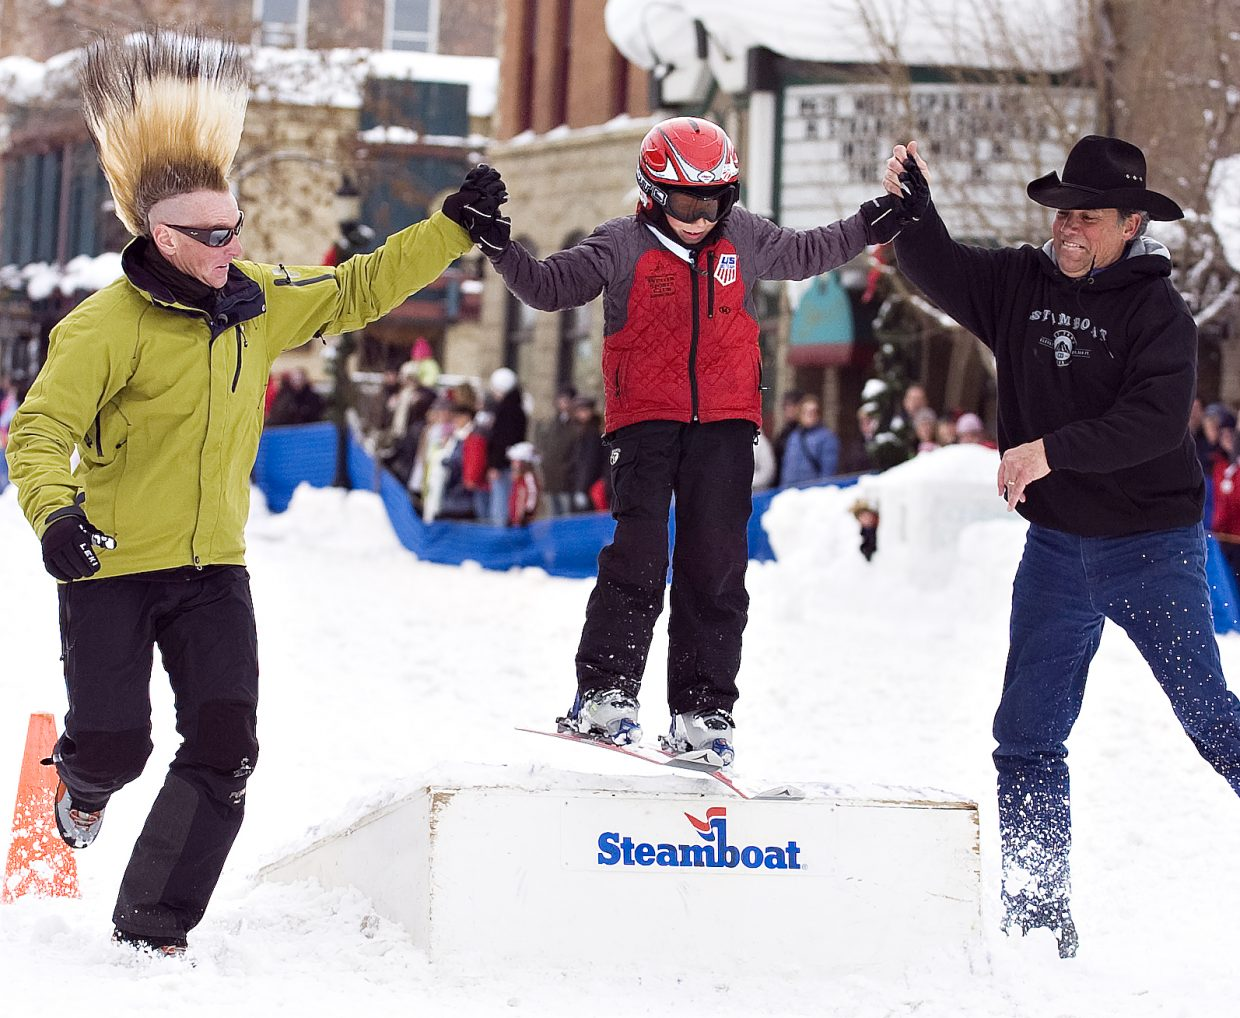 Skiing icon Glen Plake, left, and Scott Flower, right, help Cole Puckett jump the ramp on Lincoln Avenue during the Winter Carnival on Saturday.